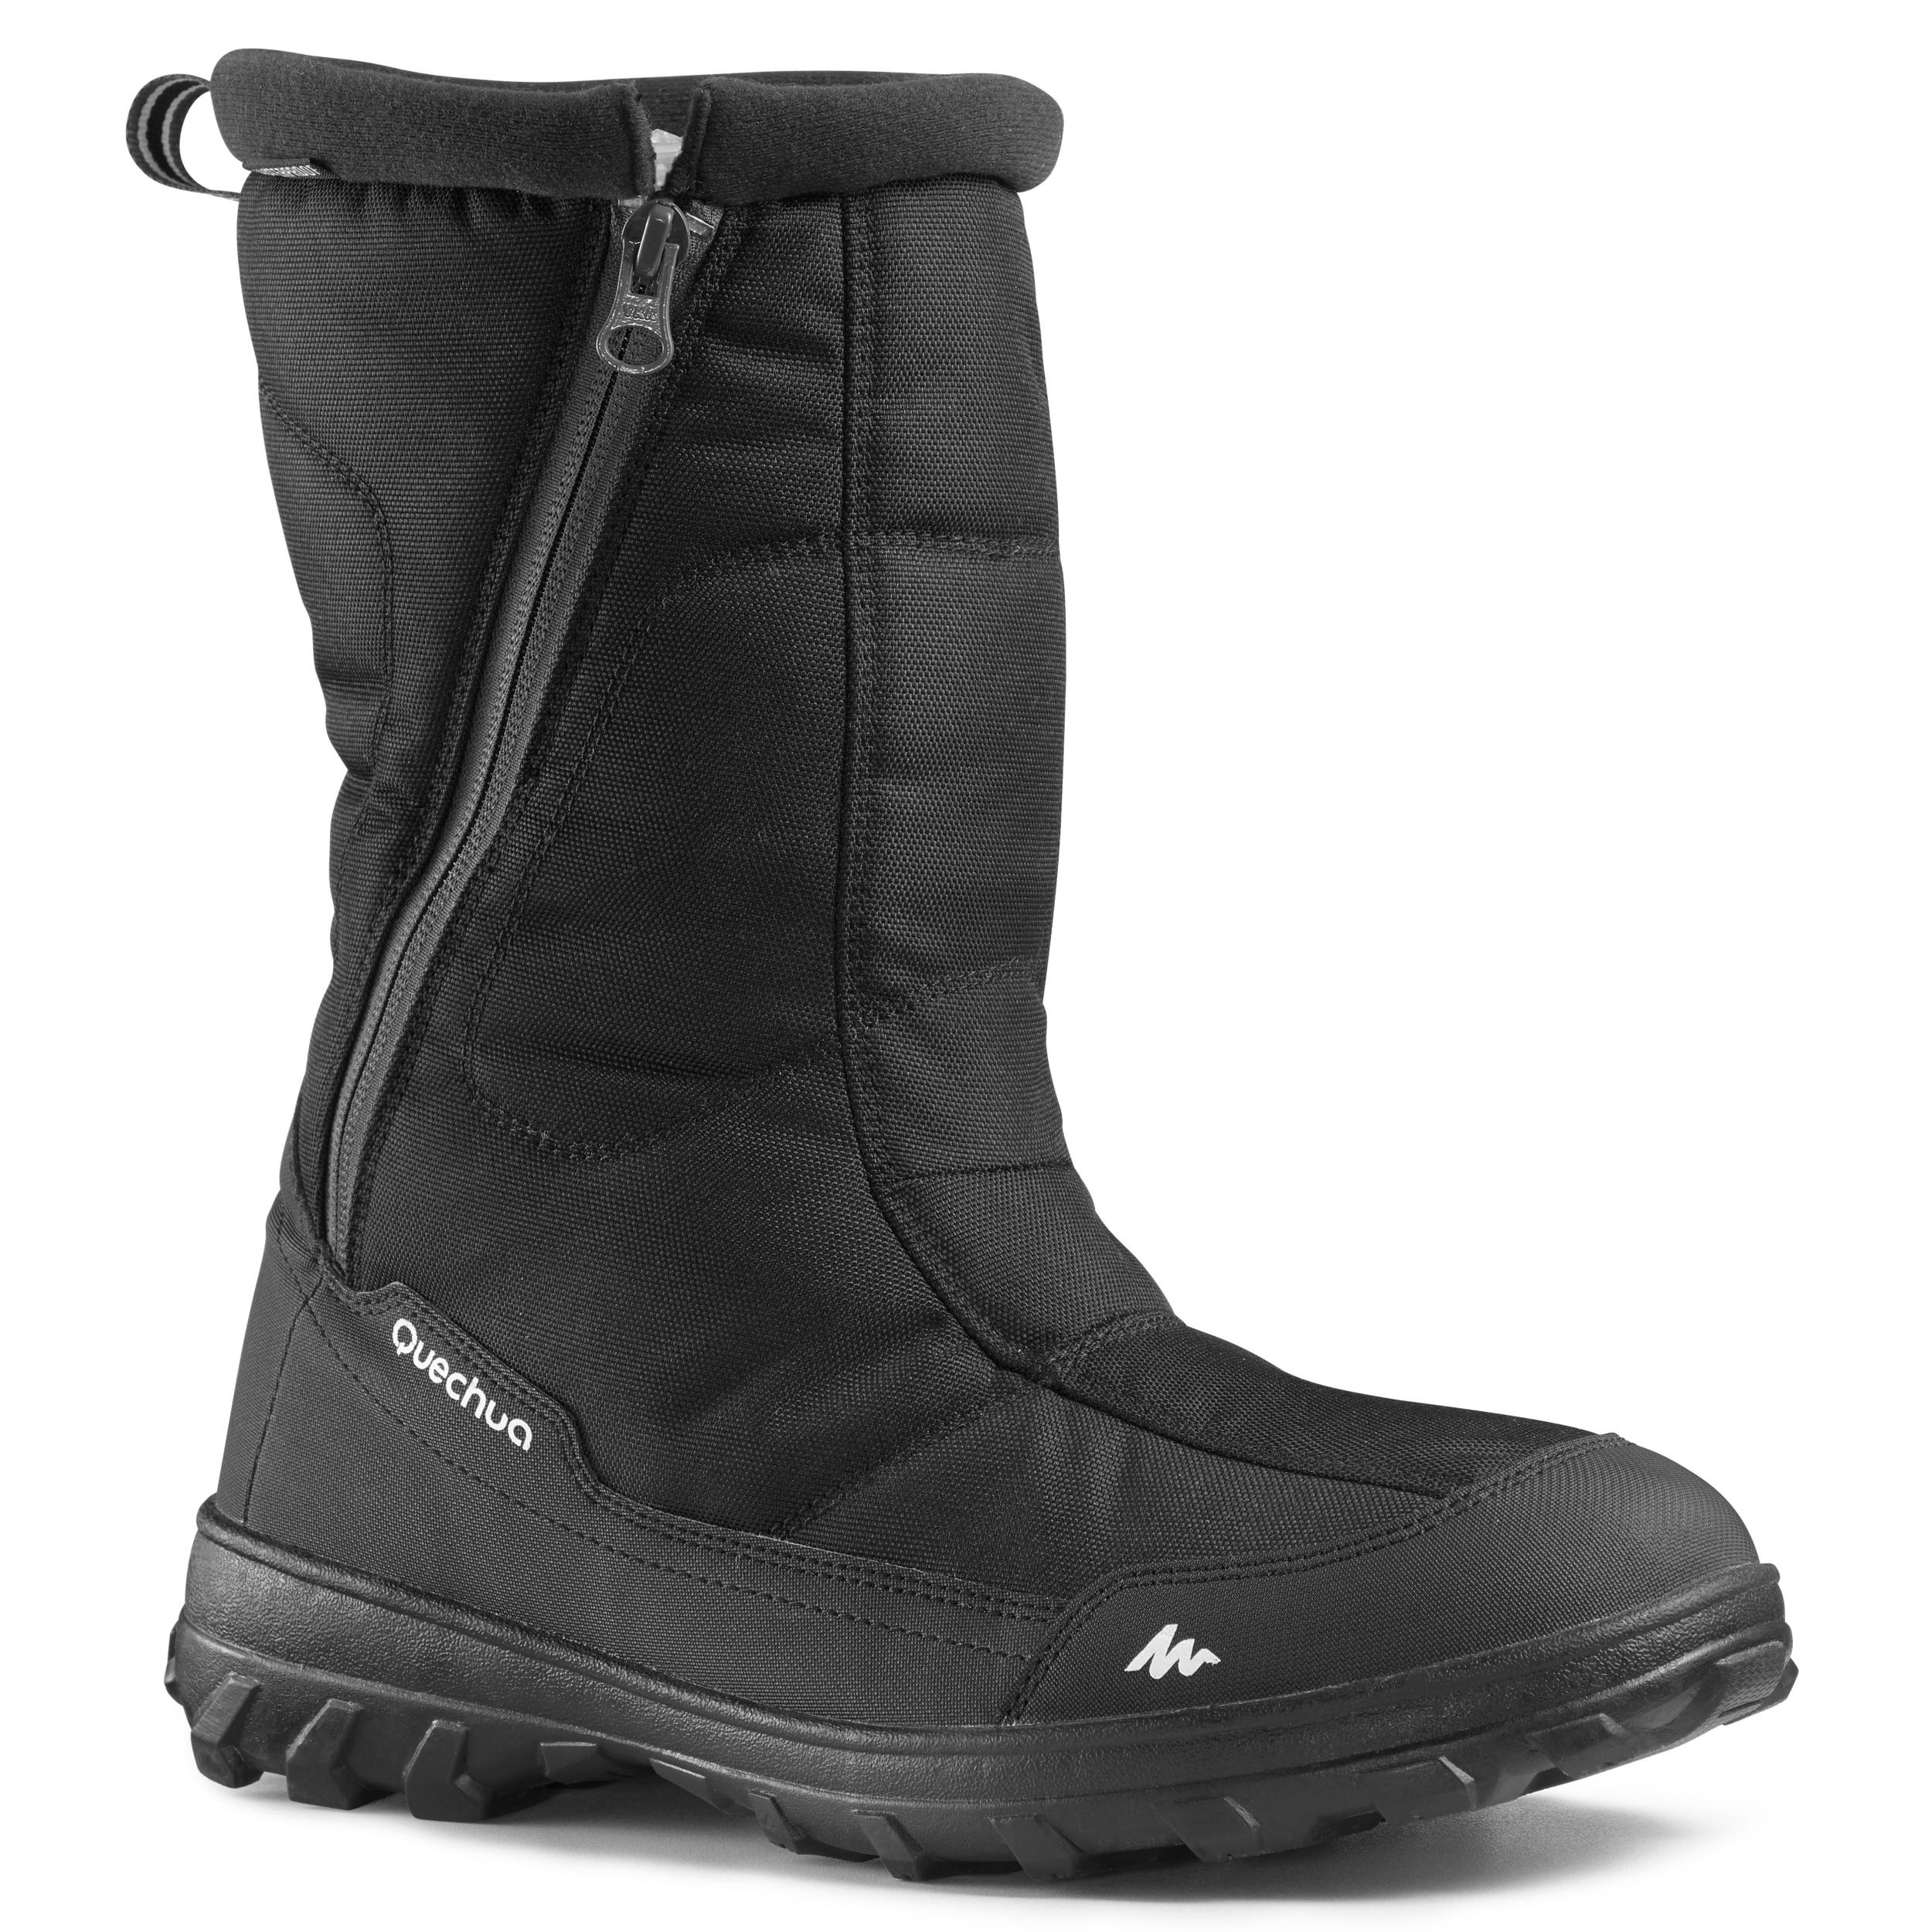 SH100 X-Warm Men's Hiking Boots - Black.